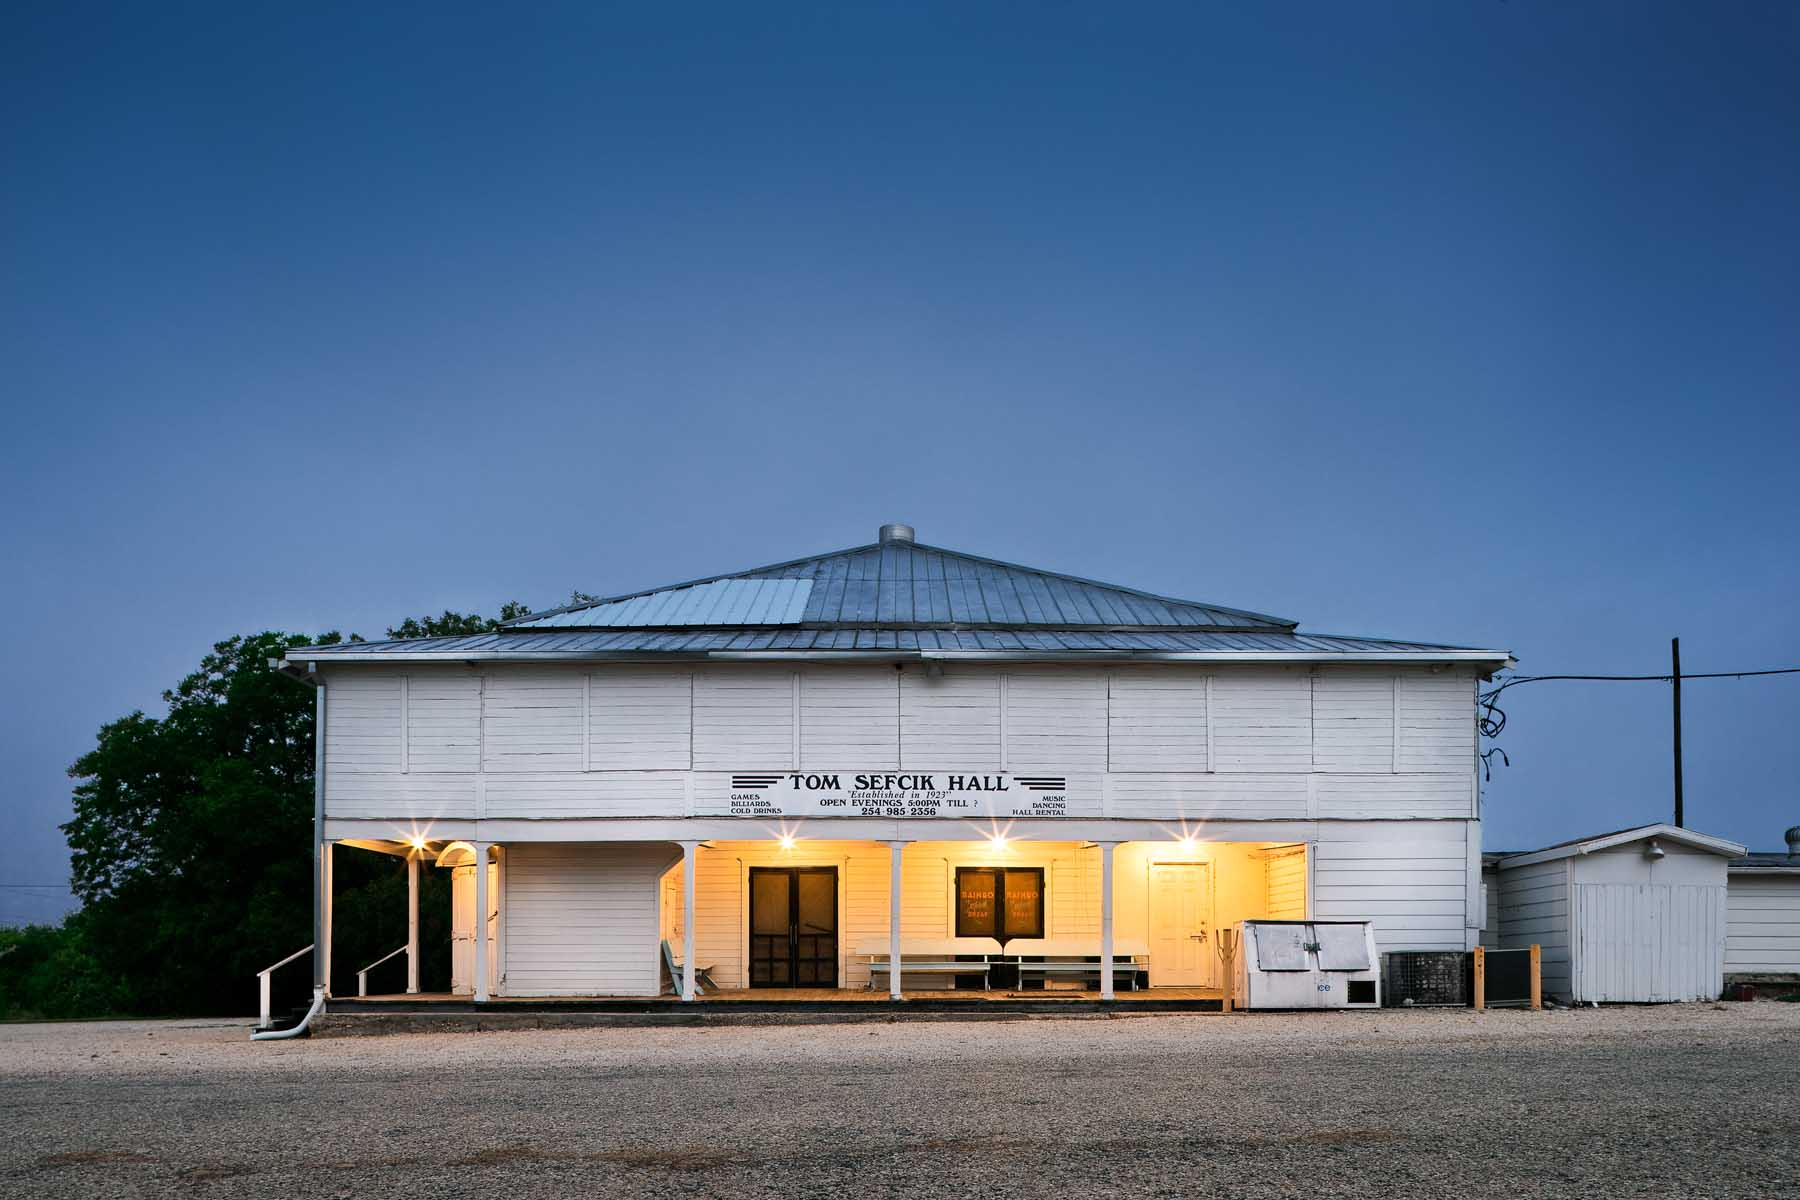 TEXAS DANCEHALLS,SEFCIK HALL